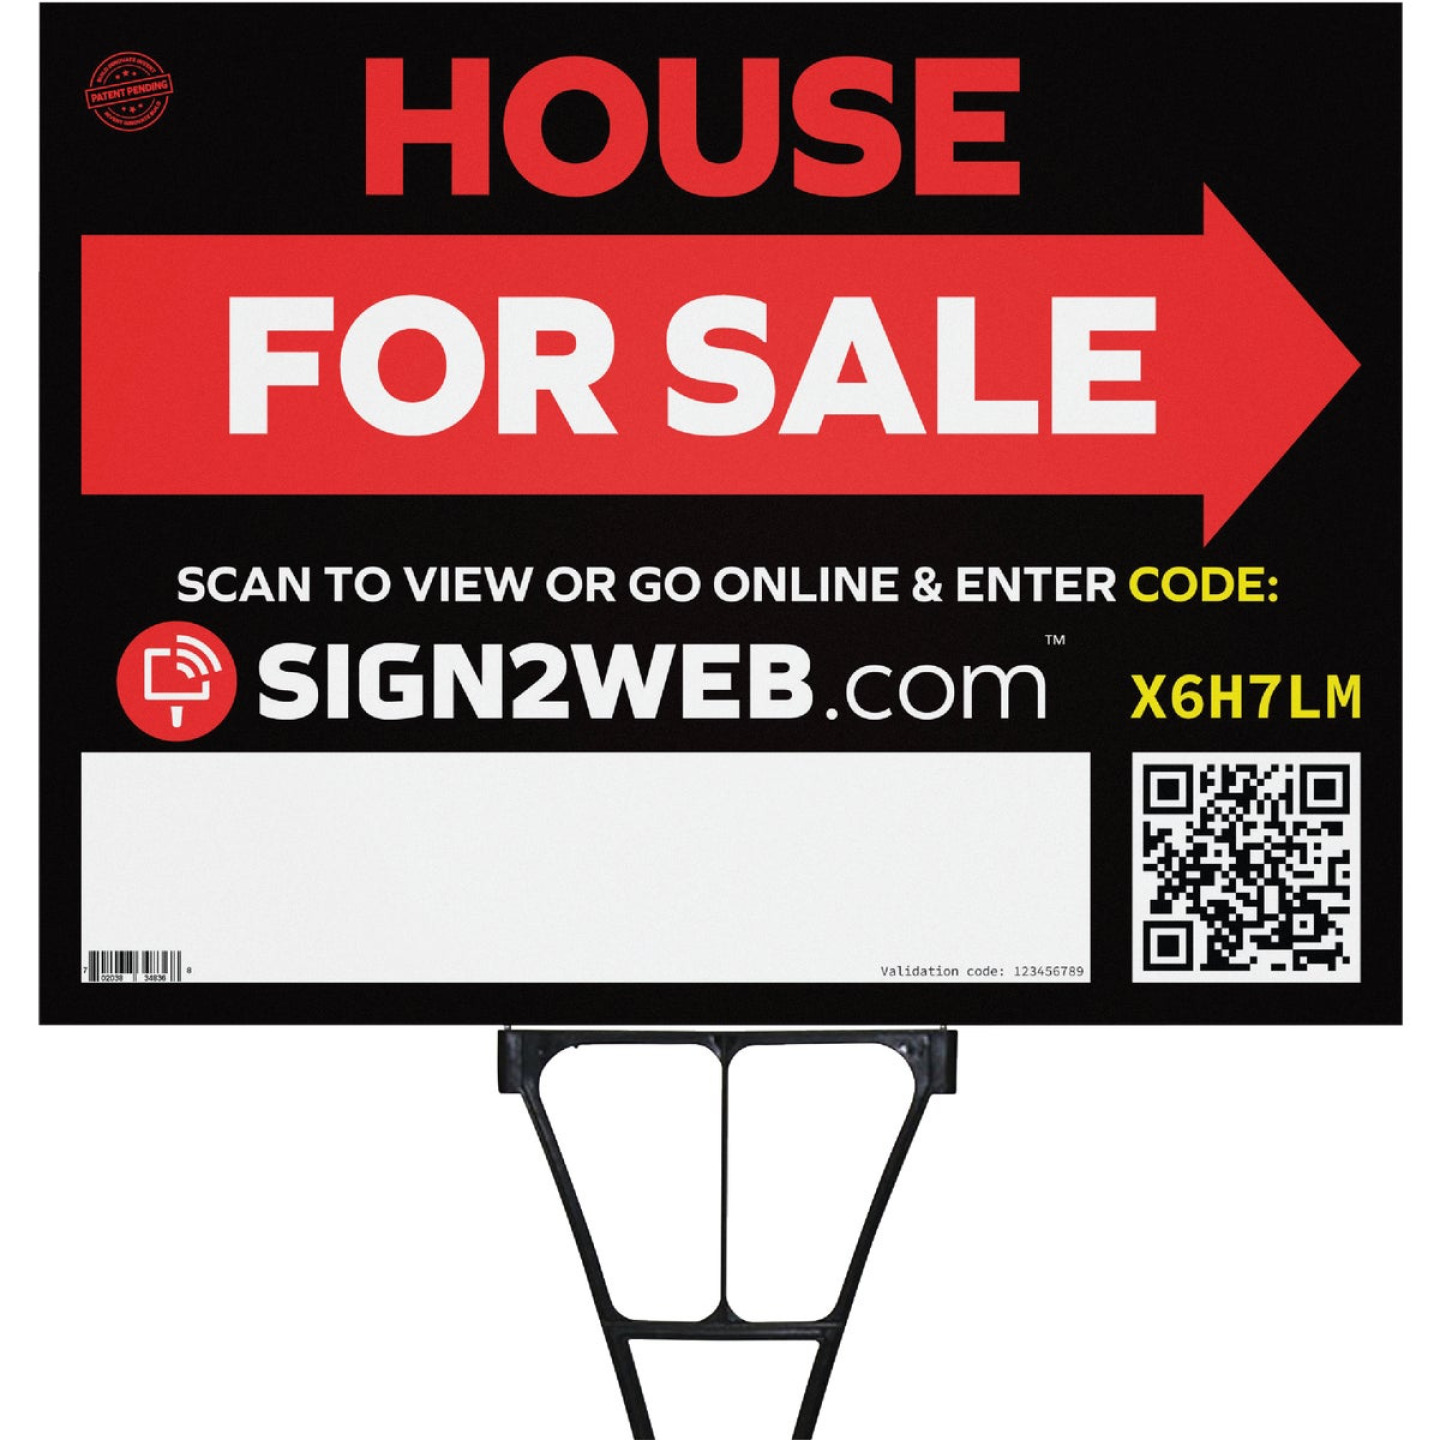 Sign2Web 18 In. x 24 In. Double Sided House For Sale with Arrow Sign Image 1